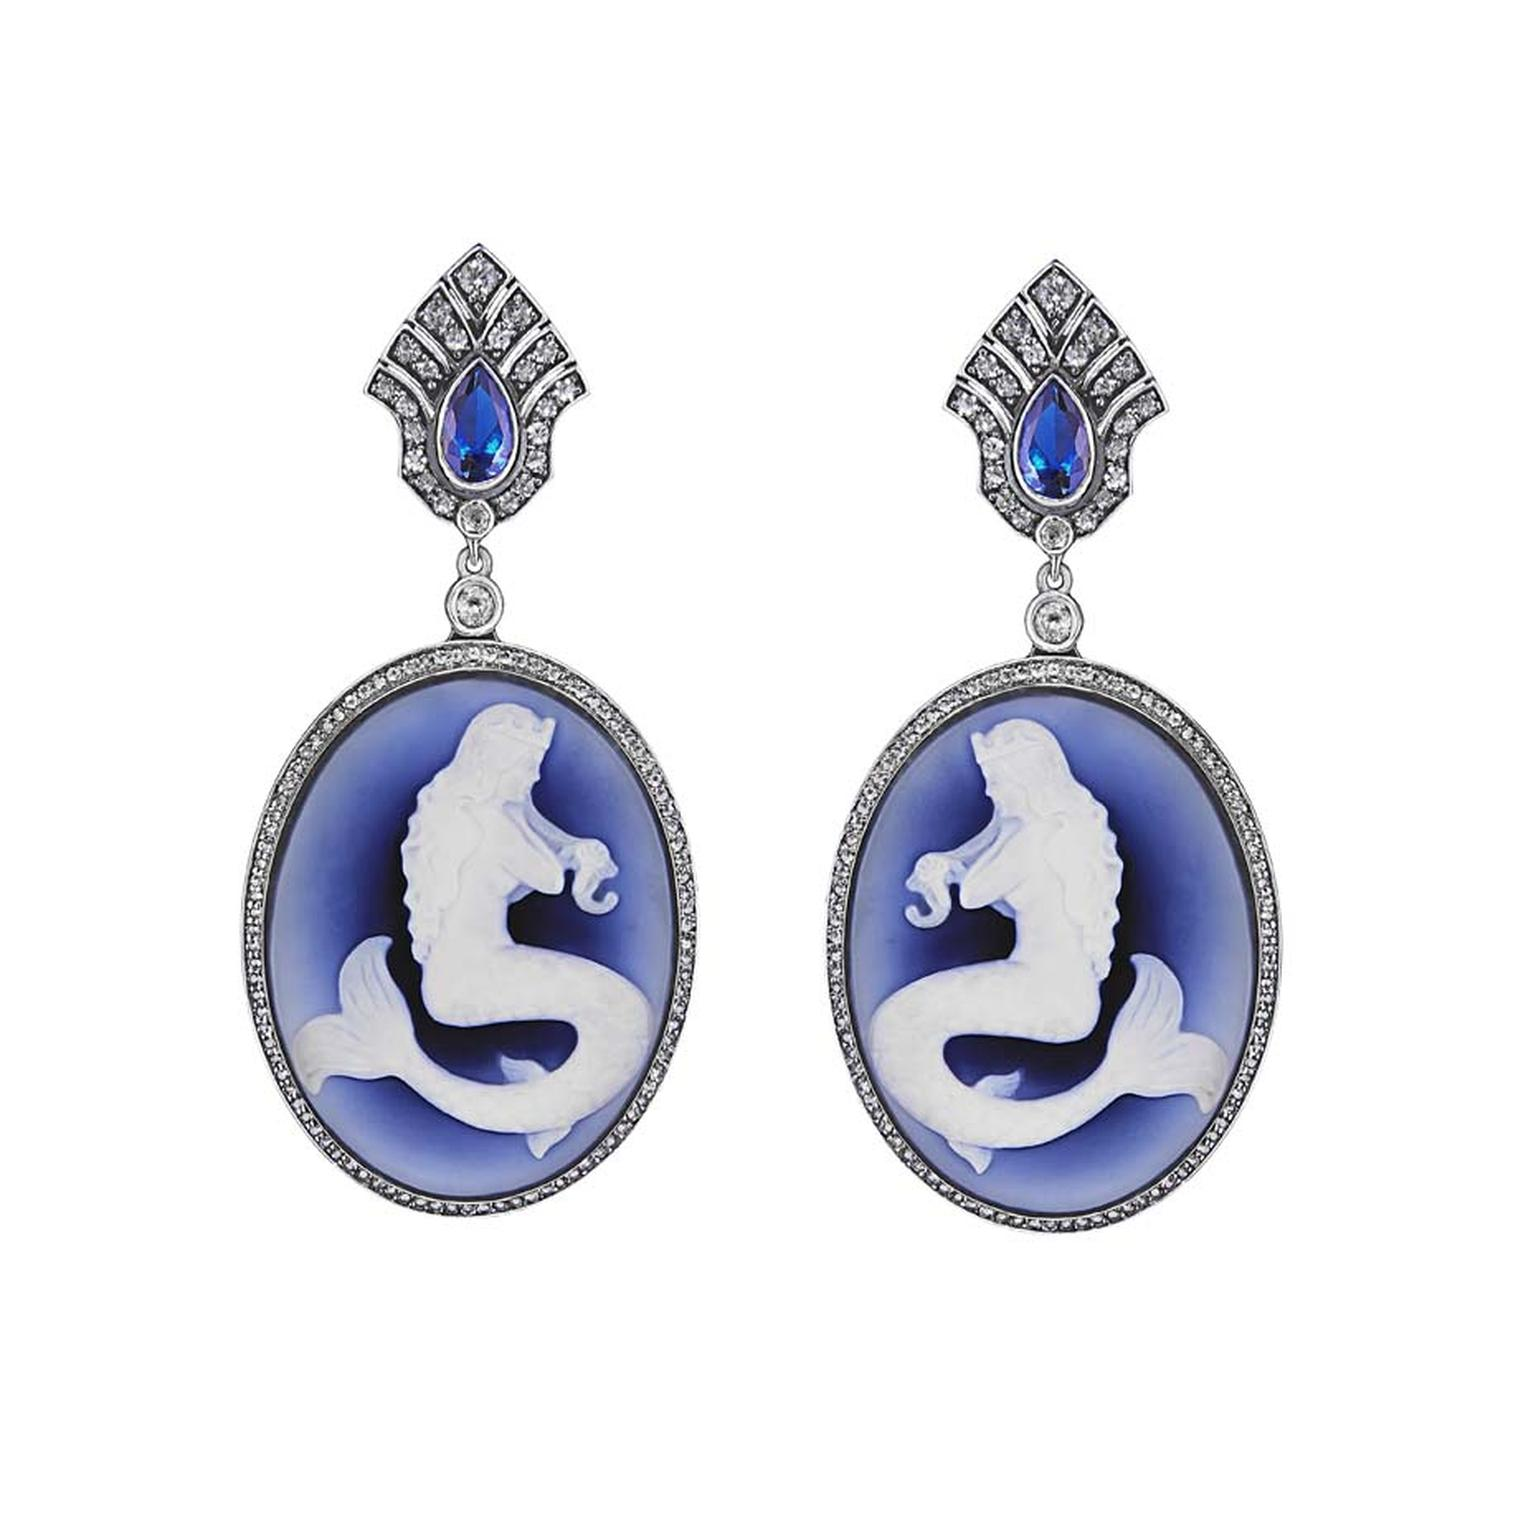 Petr Axenoff silver Undine earrings set with colourless topaz, blue agate and featuring enamel cameos